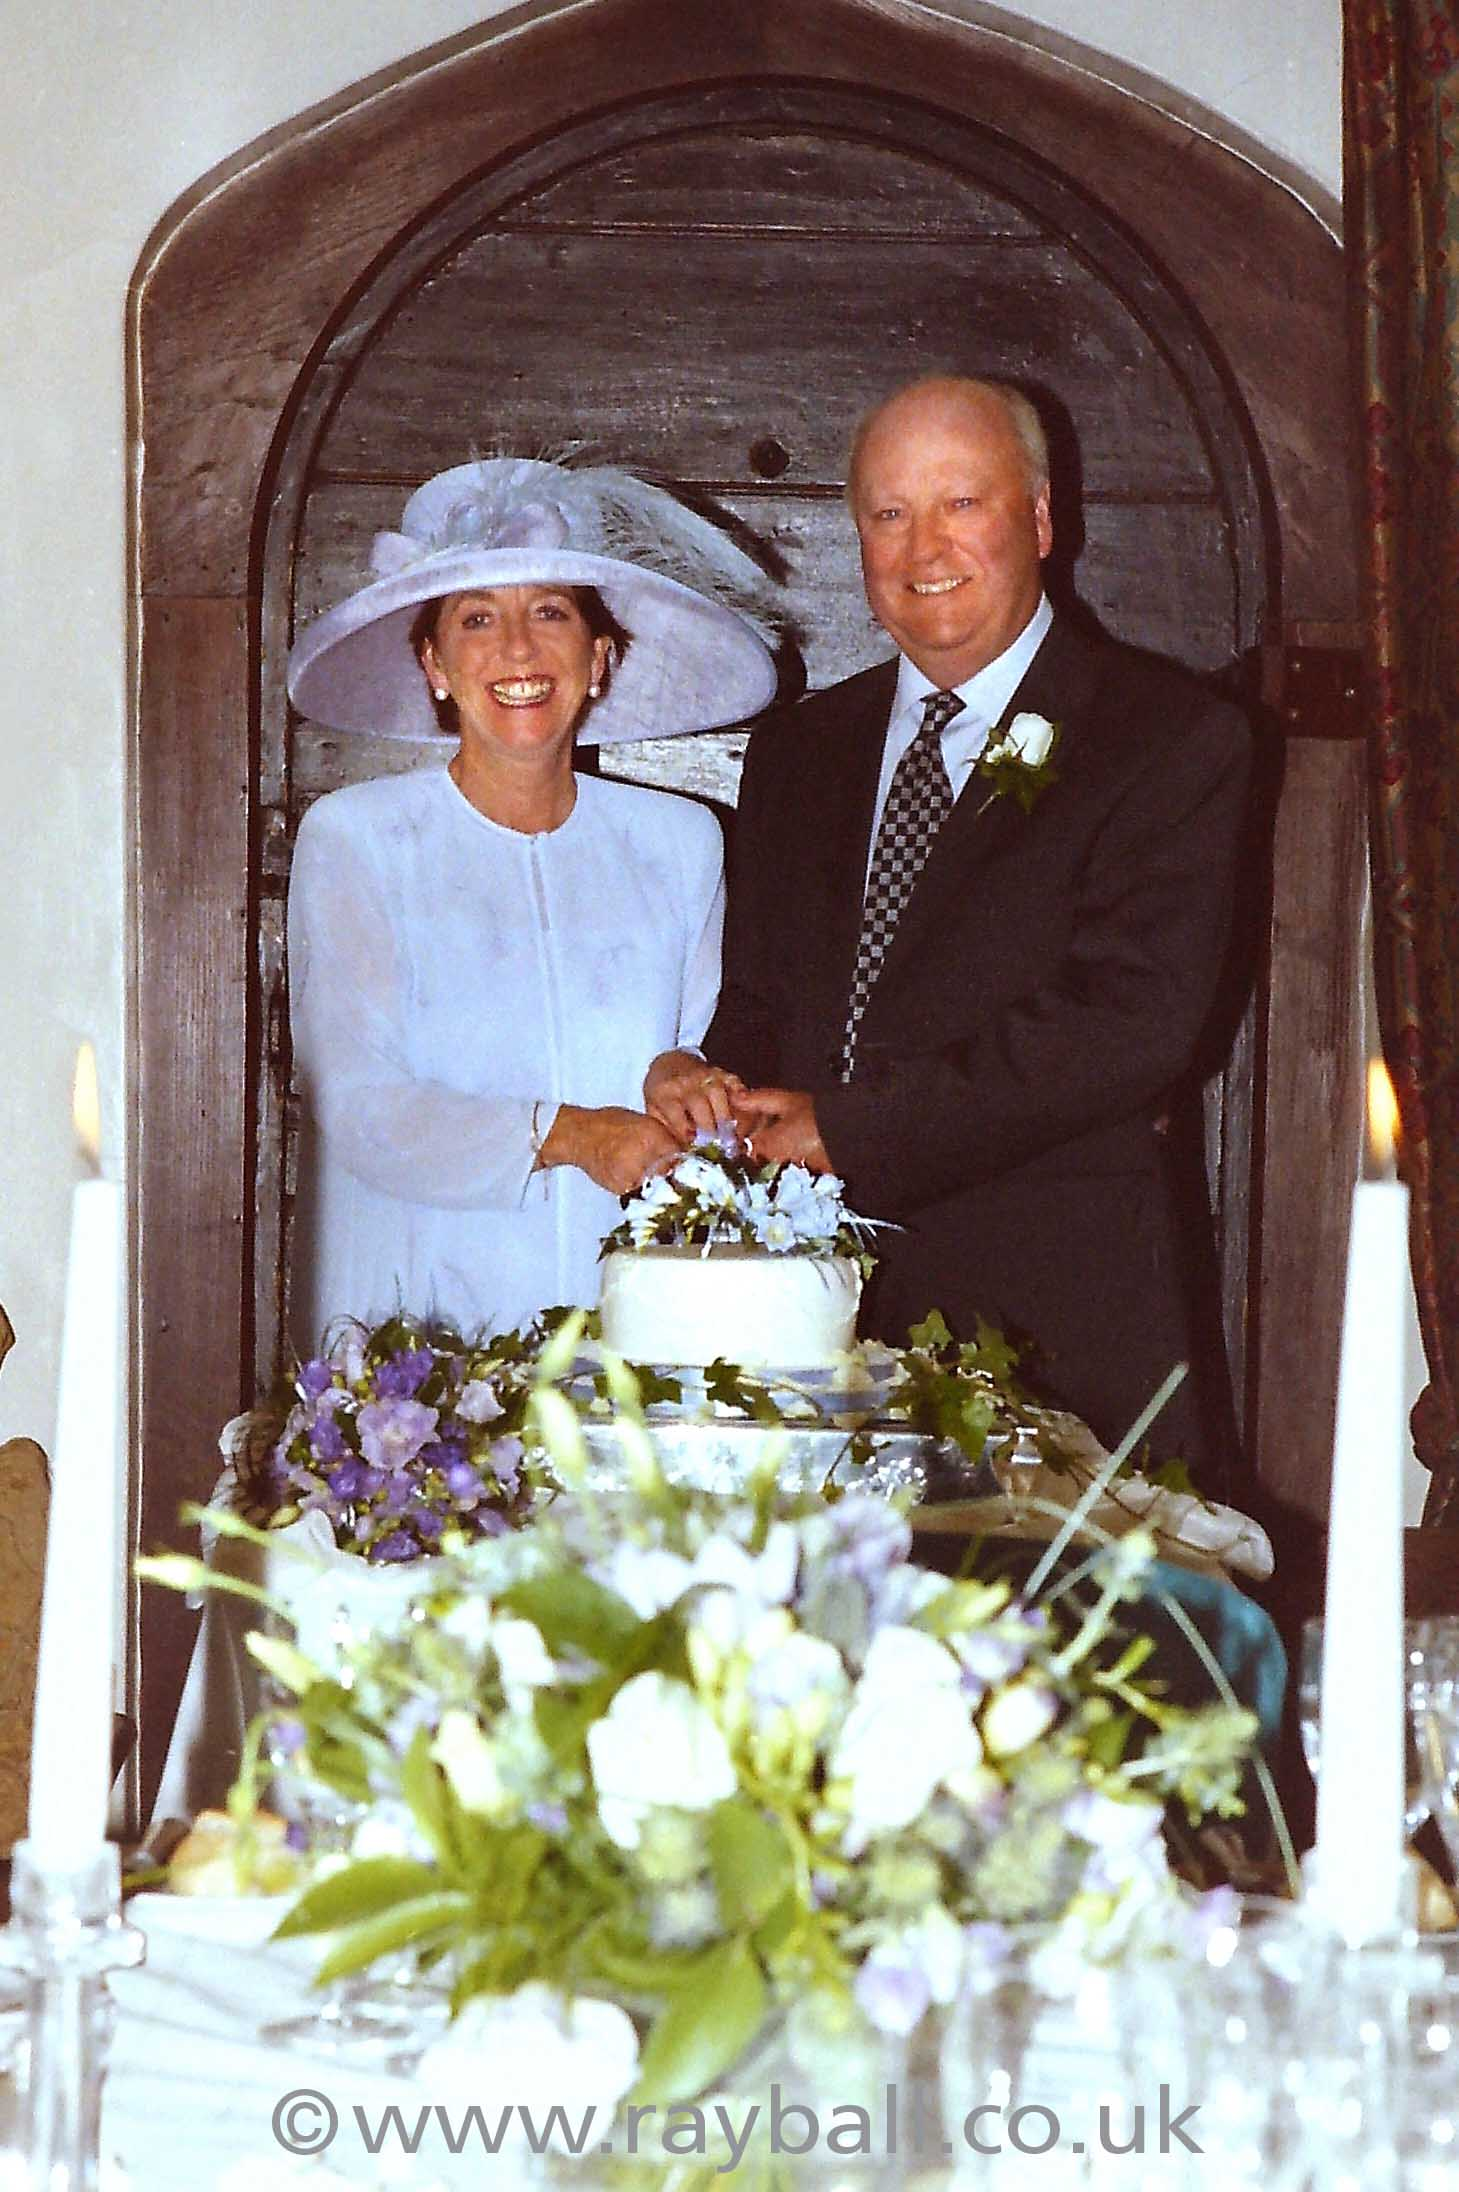 My beautiful picture at my brother's wedding in Amberly, Sussex